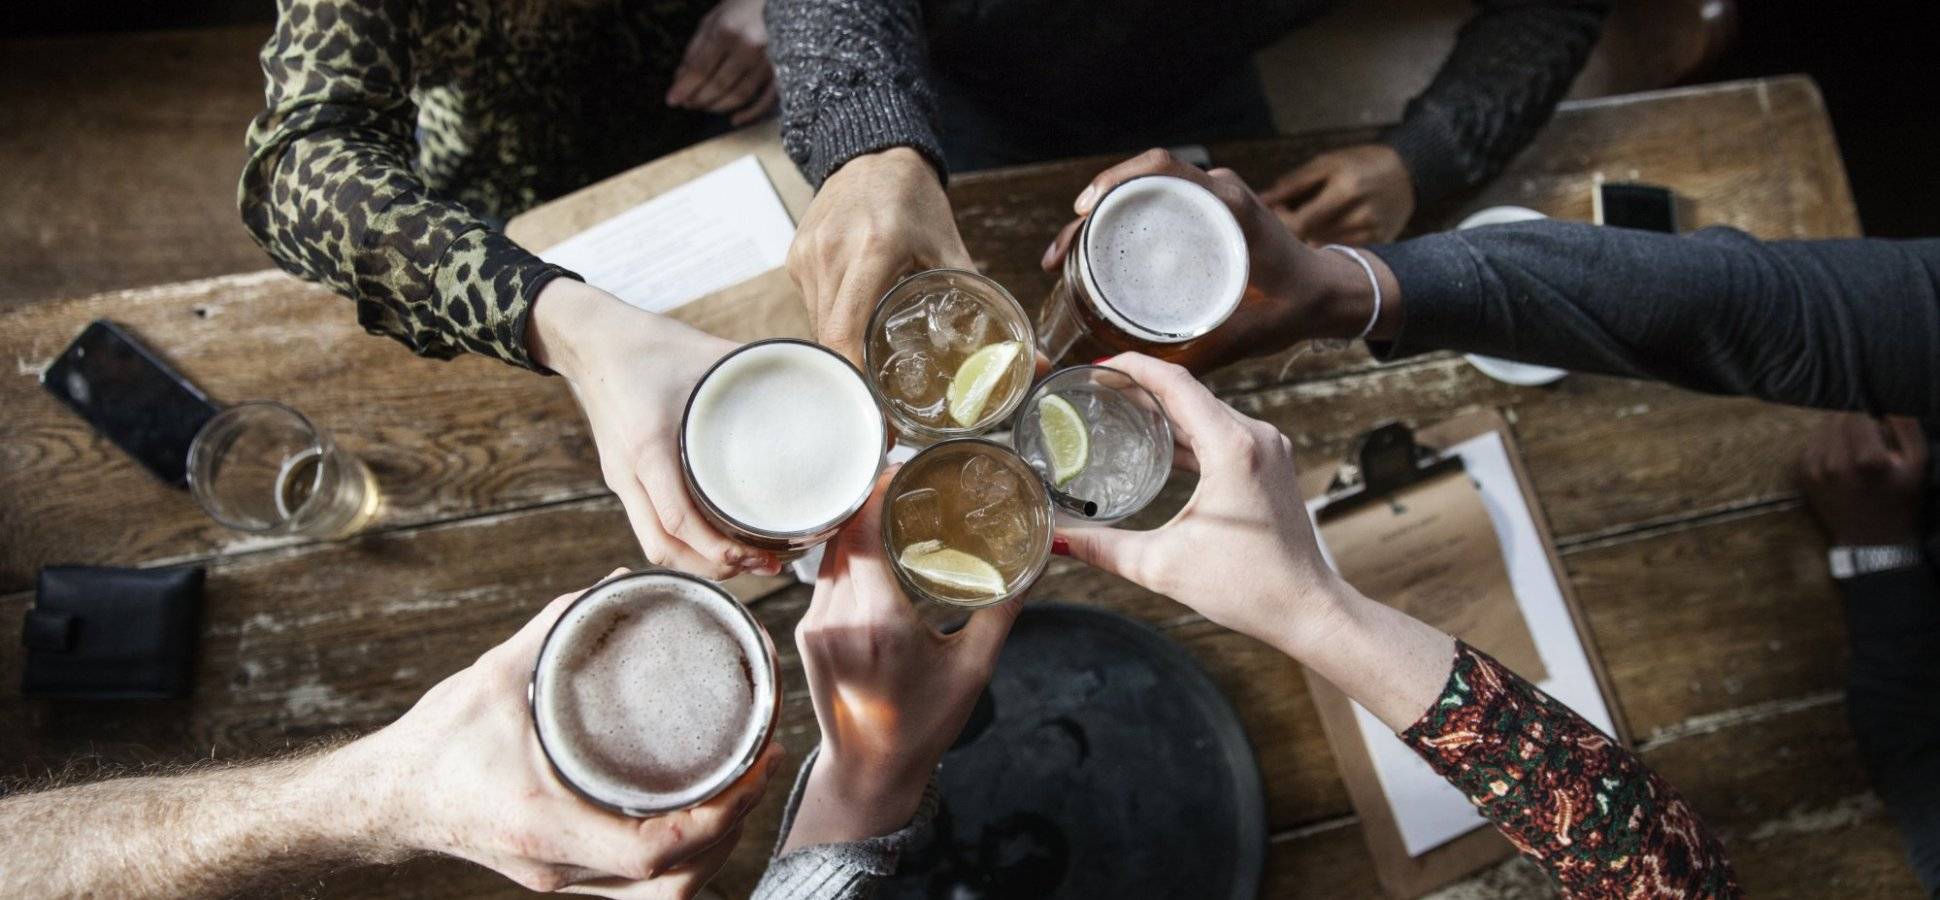 How to Improve Your Next Presentation, According to a Former IDEO Exec: Go to the Bar